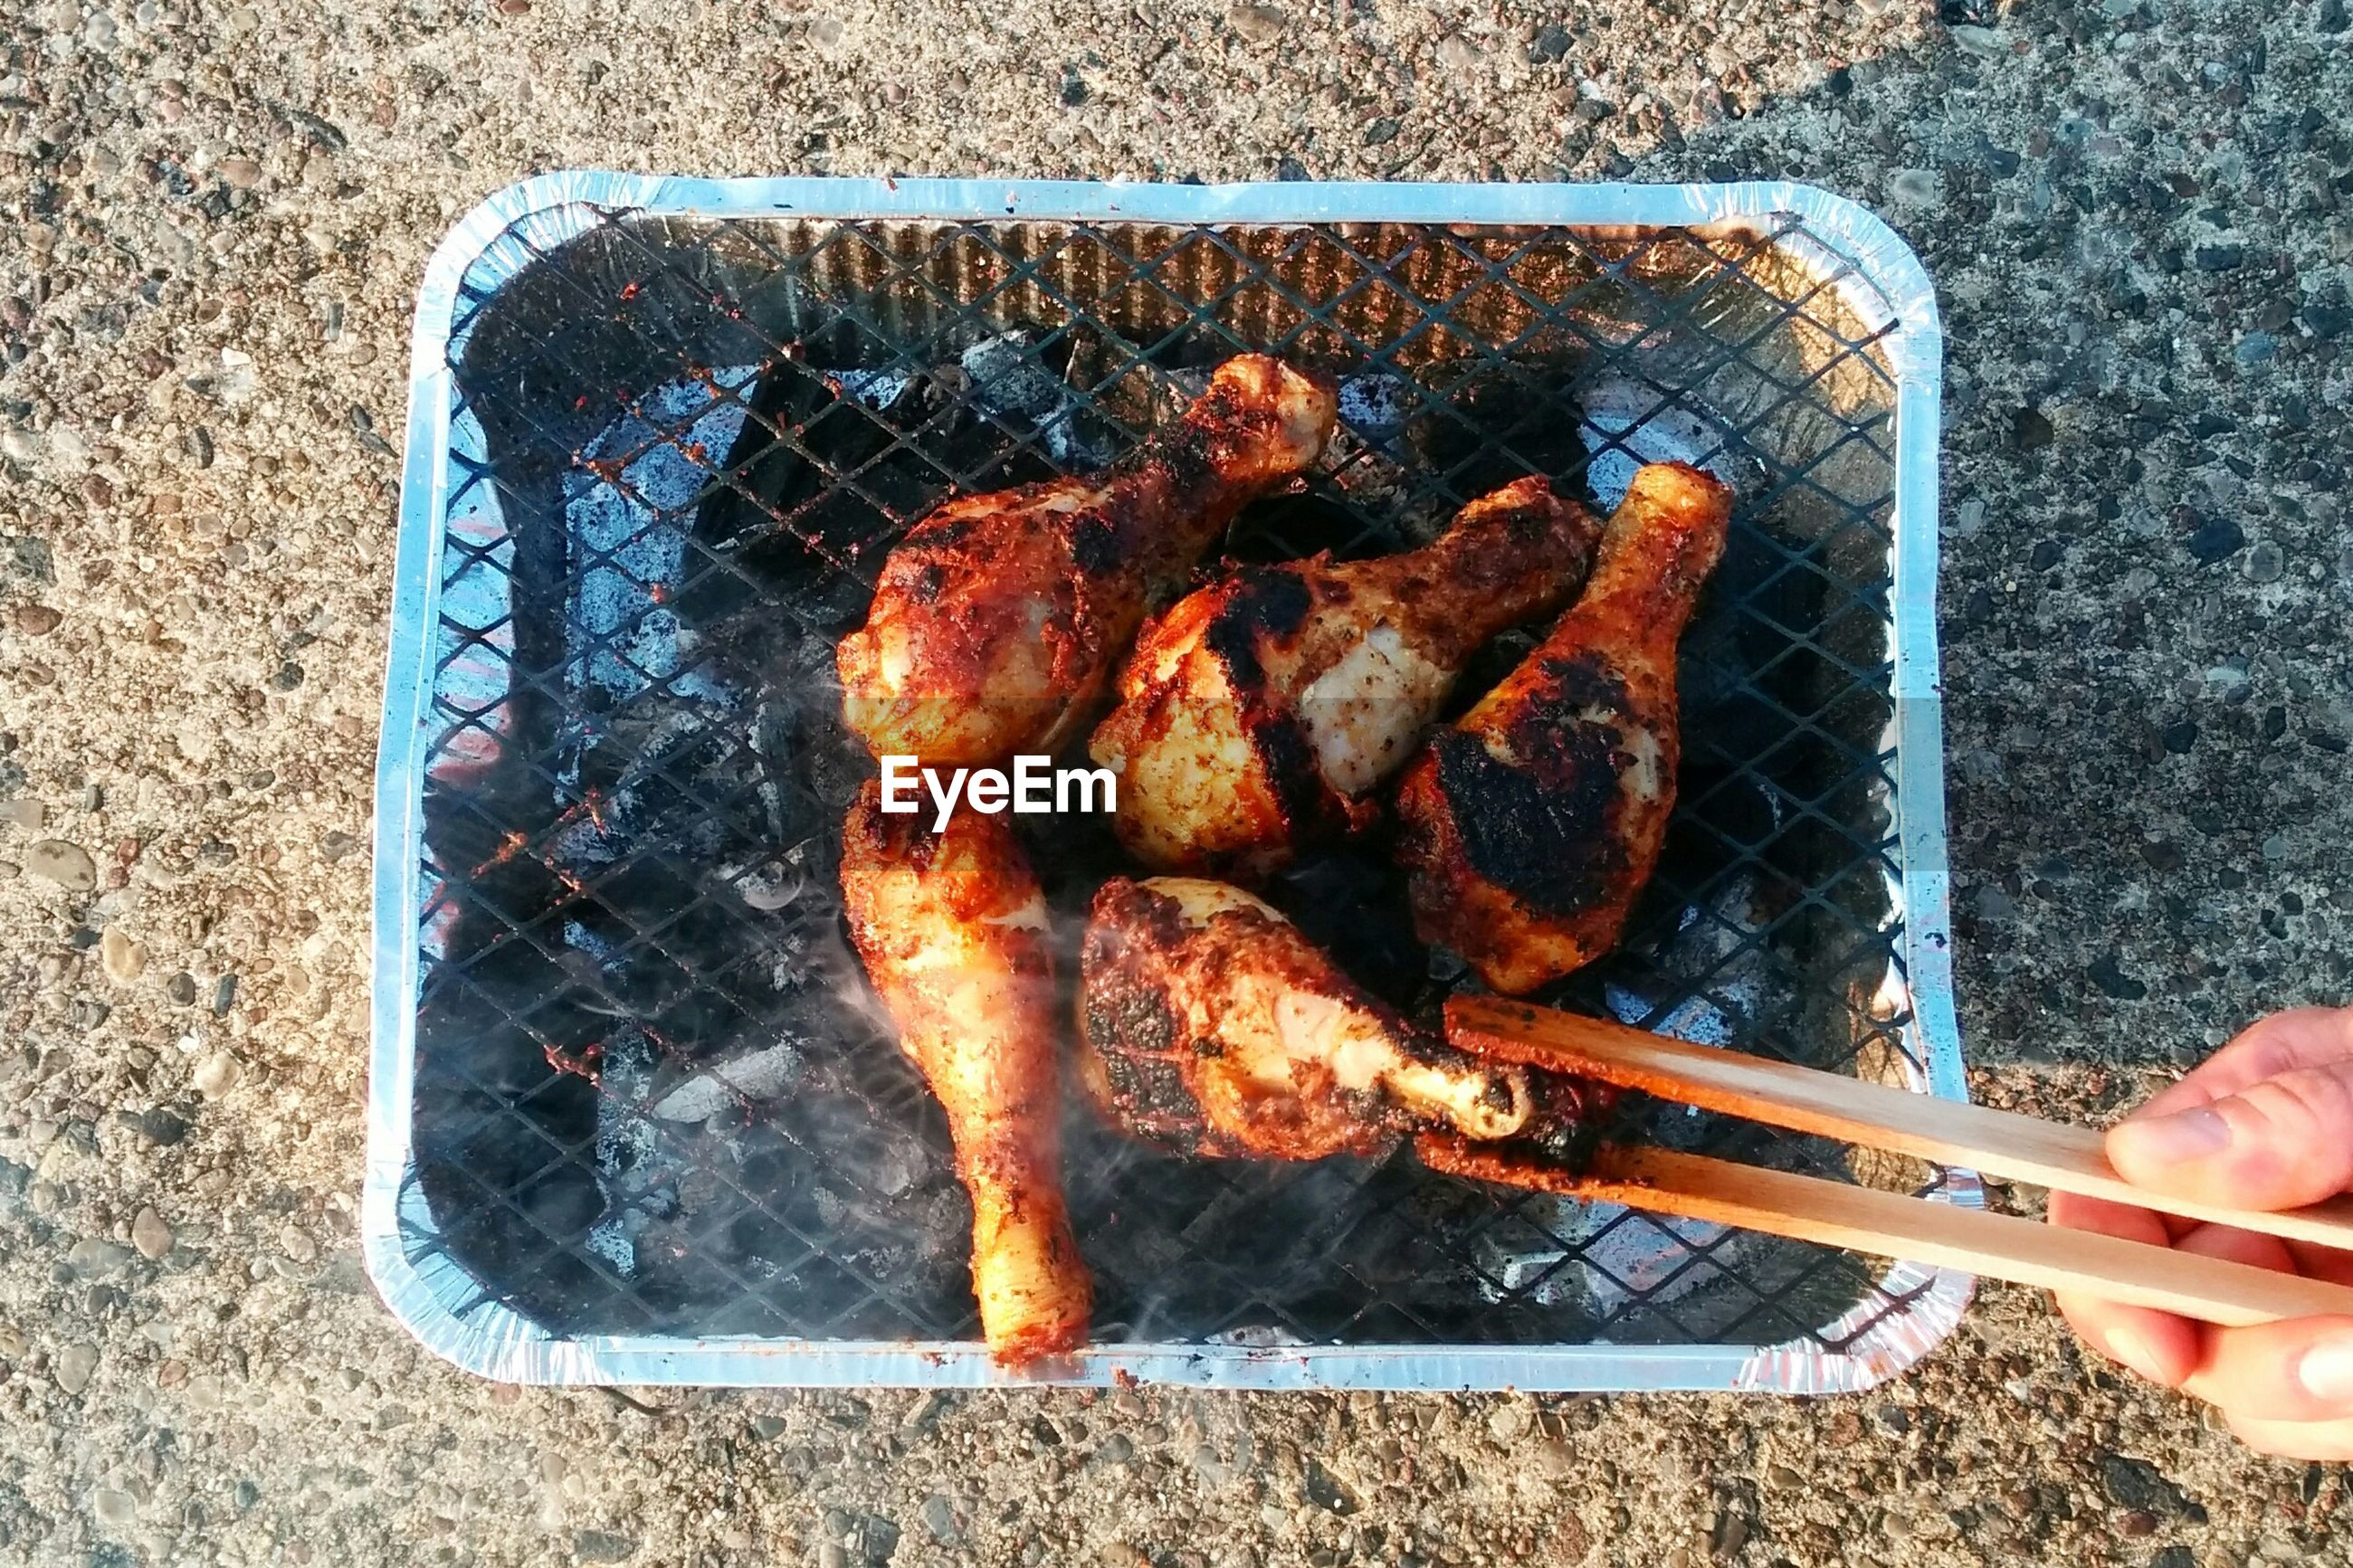 Cropped hand of person grilling meat on metal grate